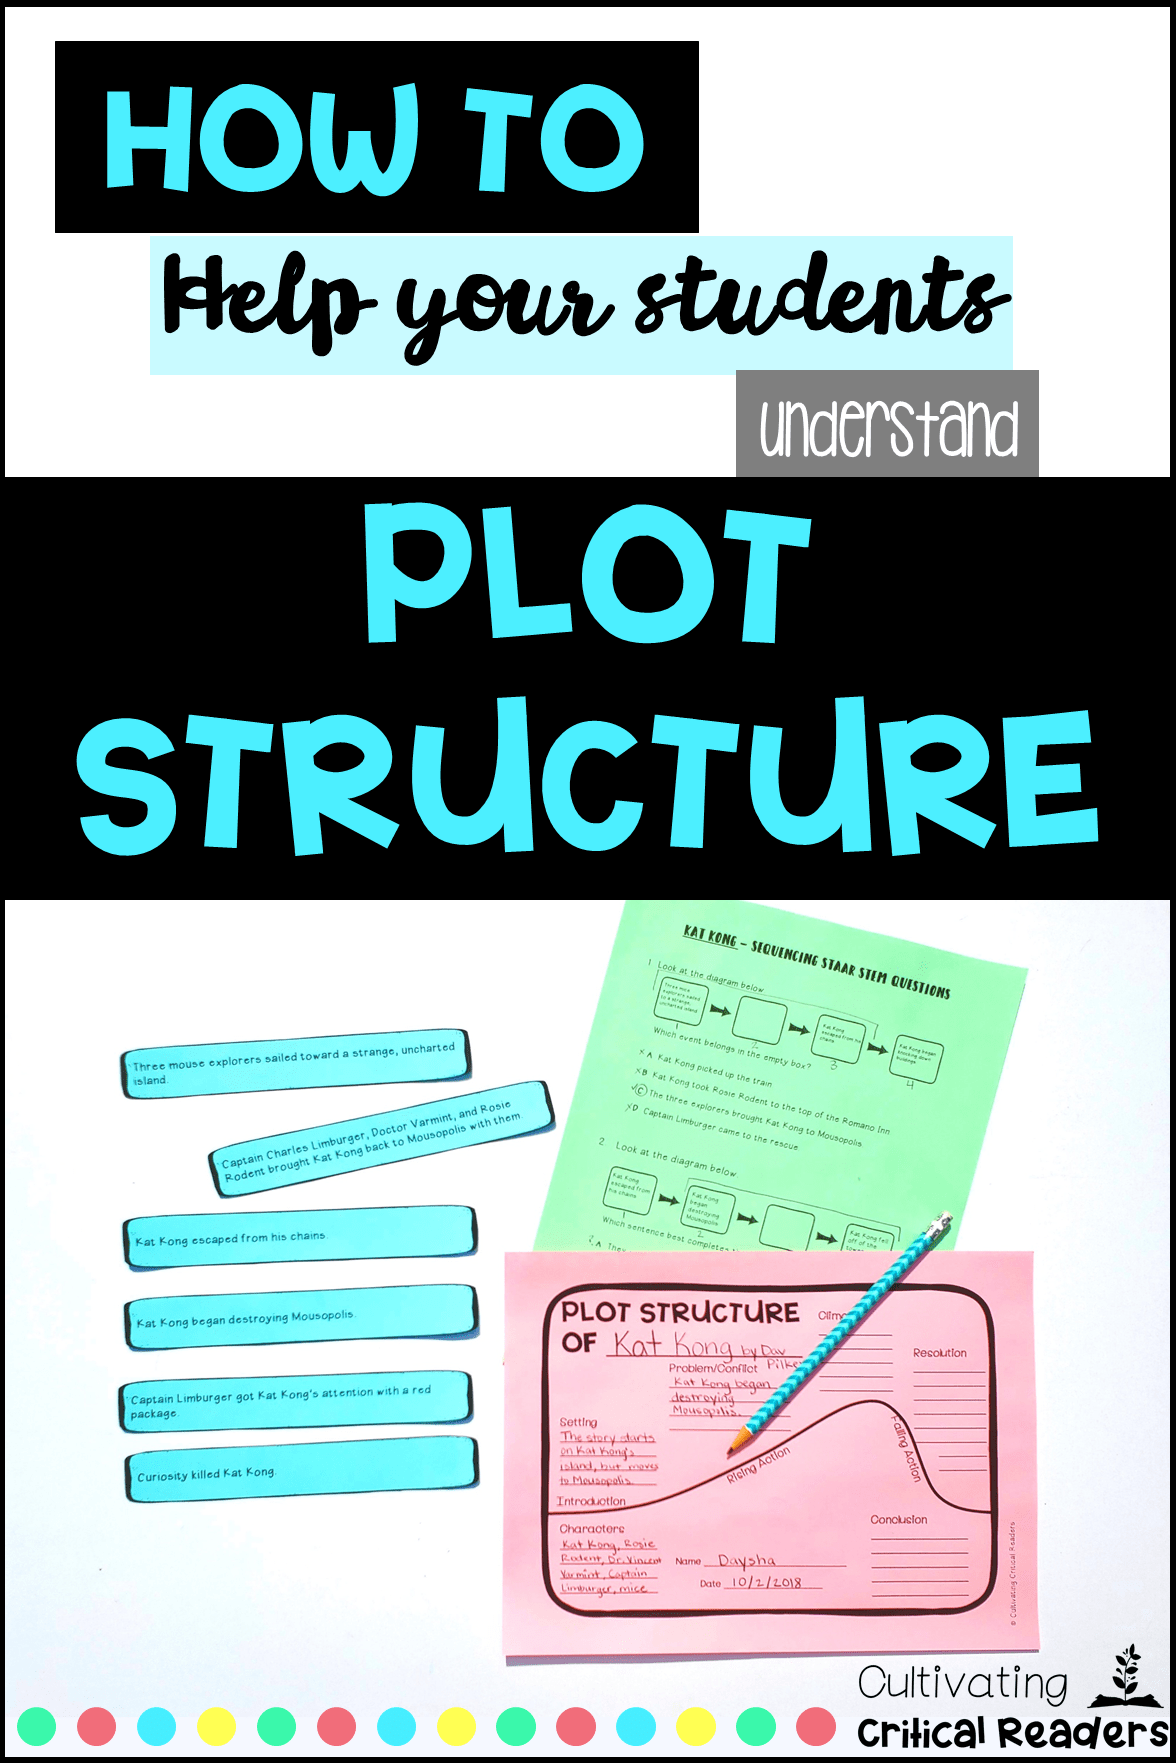 How to help your students understand plot structure blog post-min